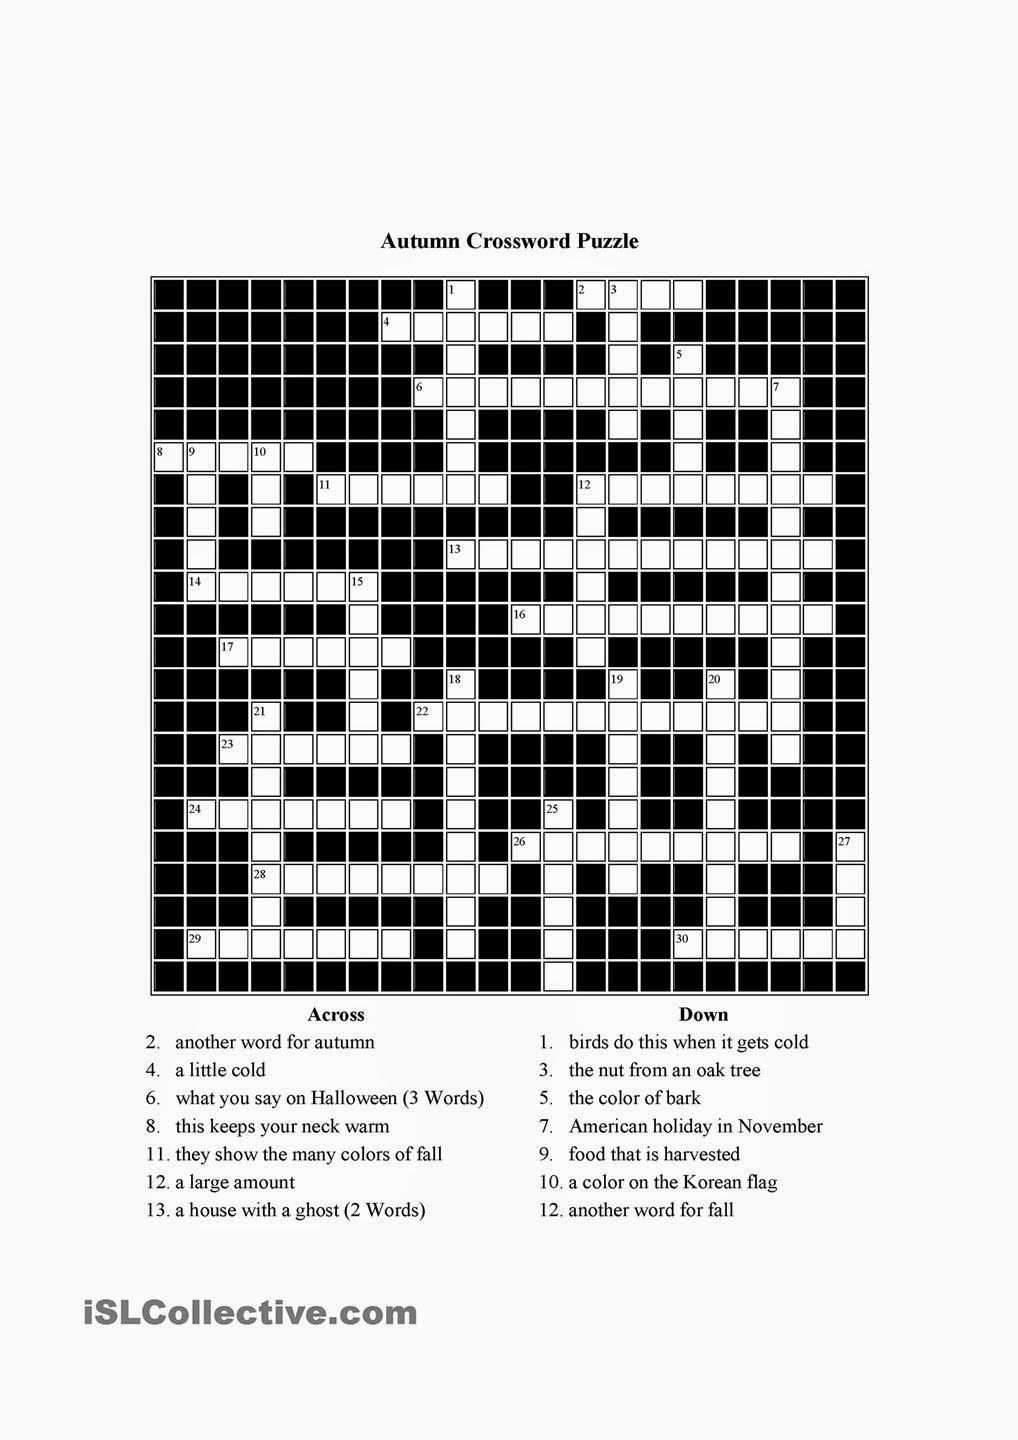 Free Printable Cards: Free Printable Crossword Puzzles | Free - Printable Crossword Puzzles For Learning English